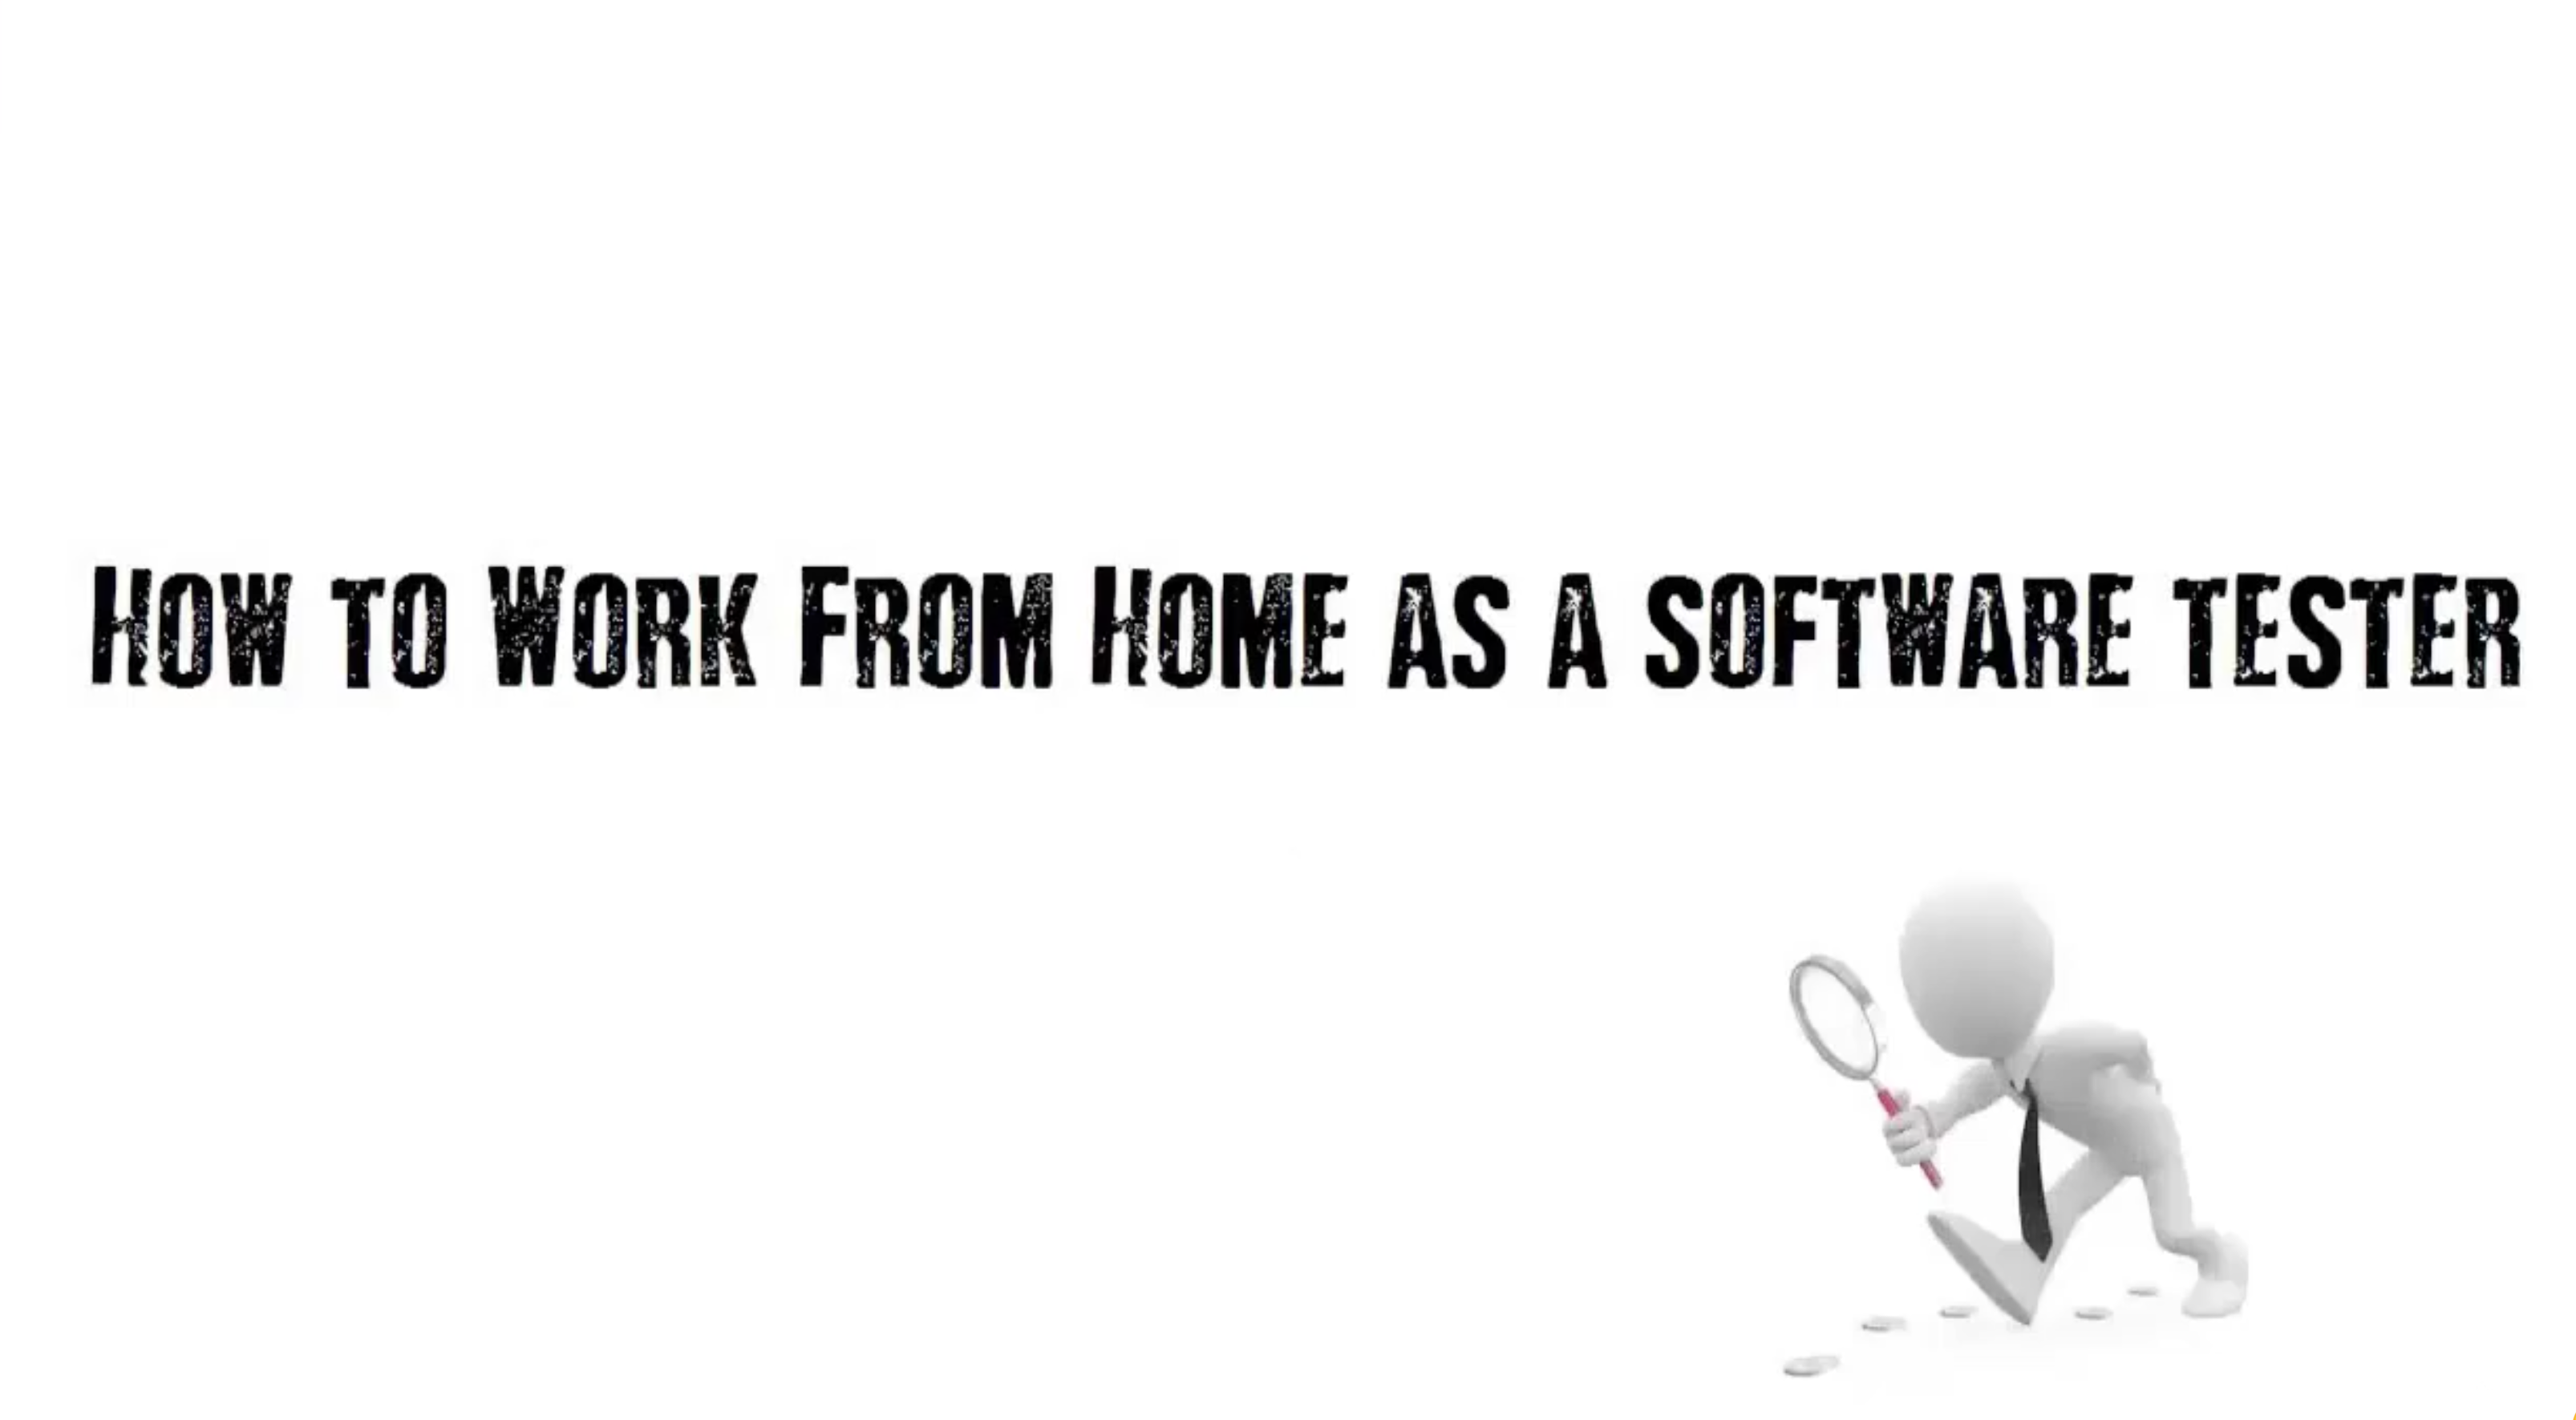 Learn How To Work From Home and Earn Money as Software Tester